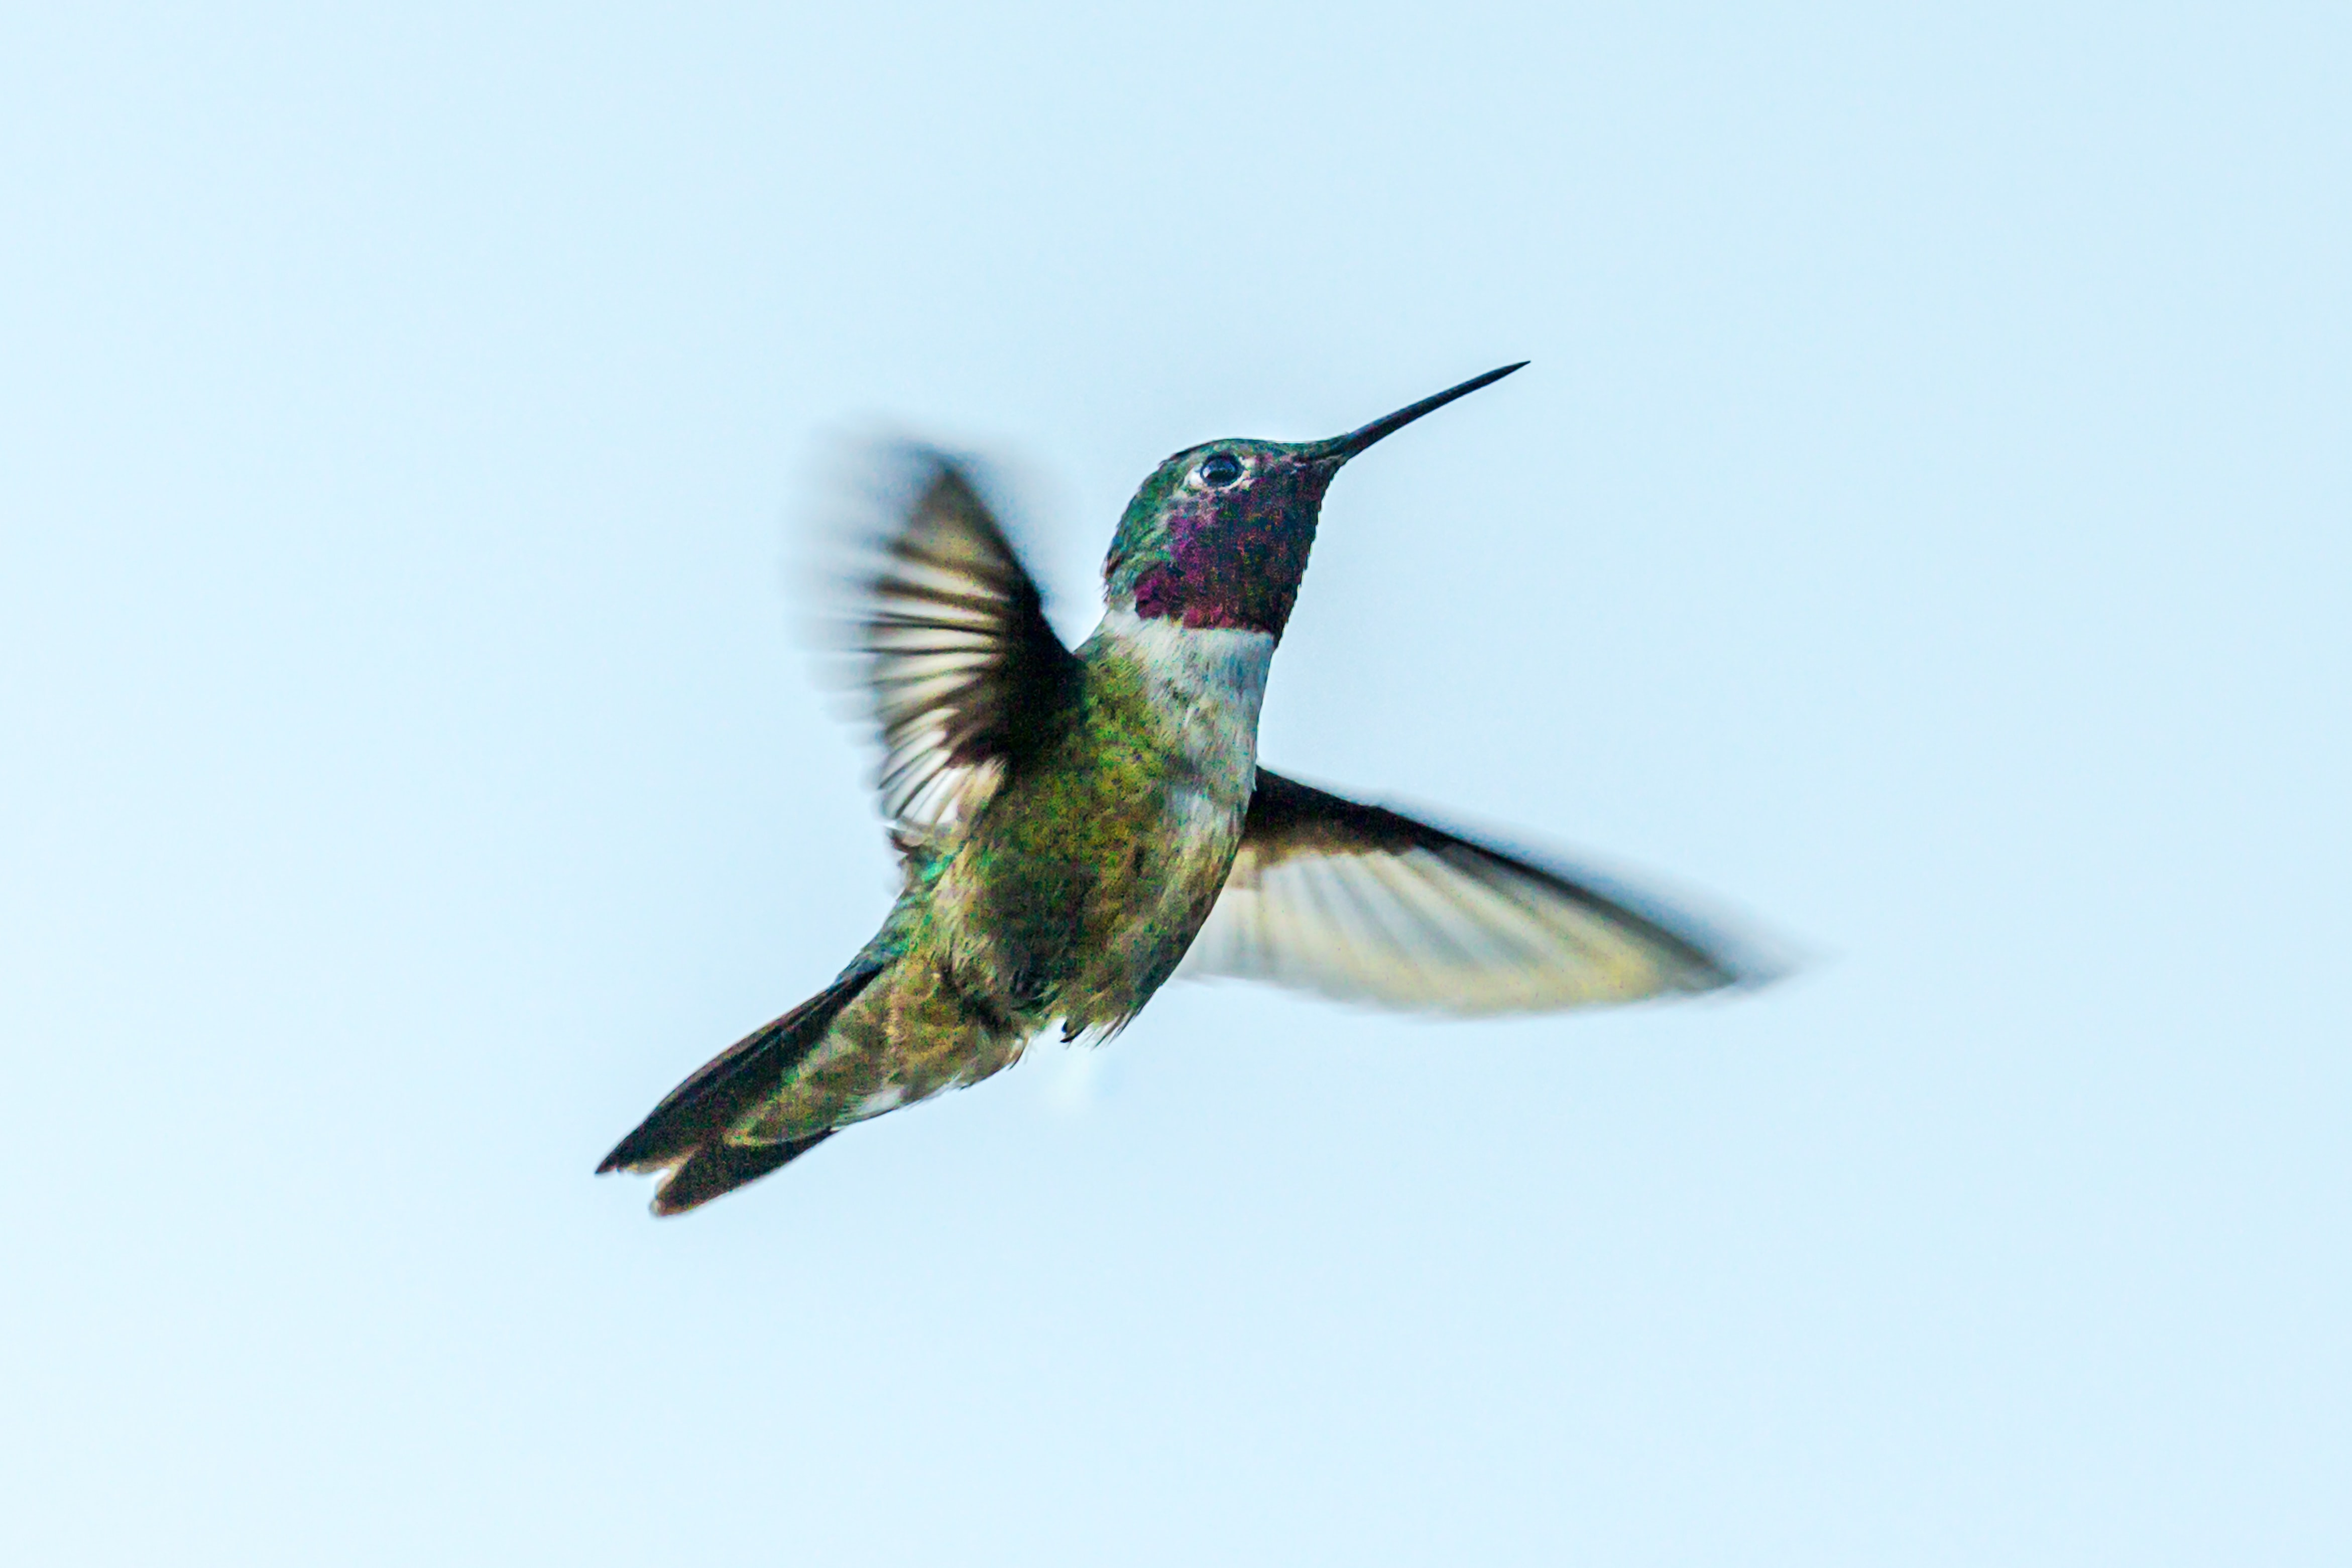 green Hummingbird spreading its wings